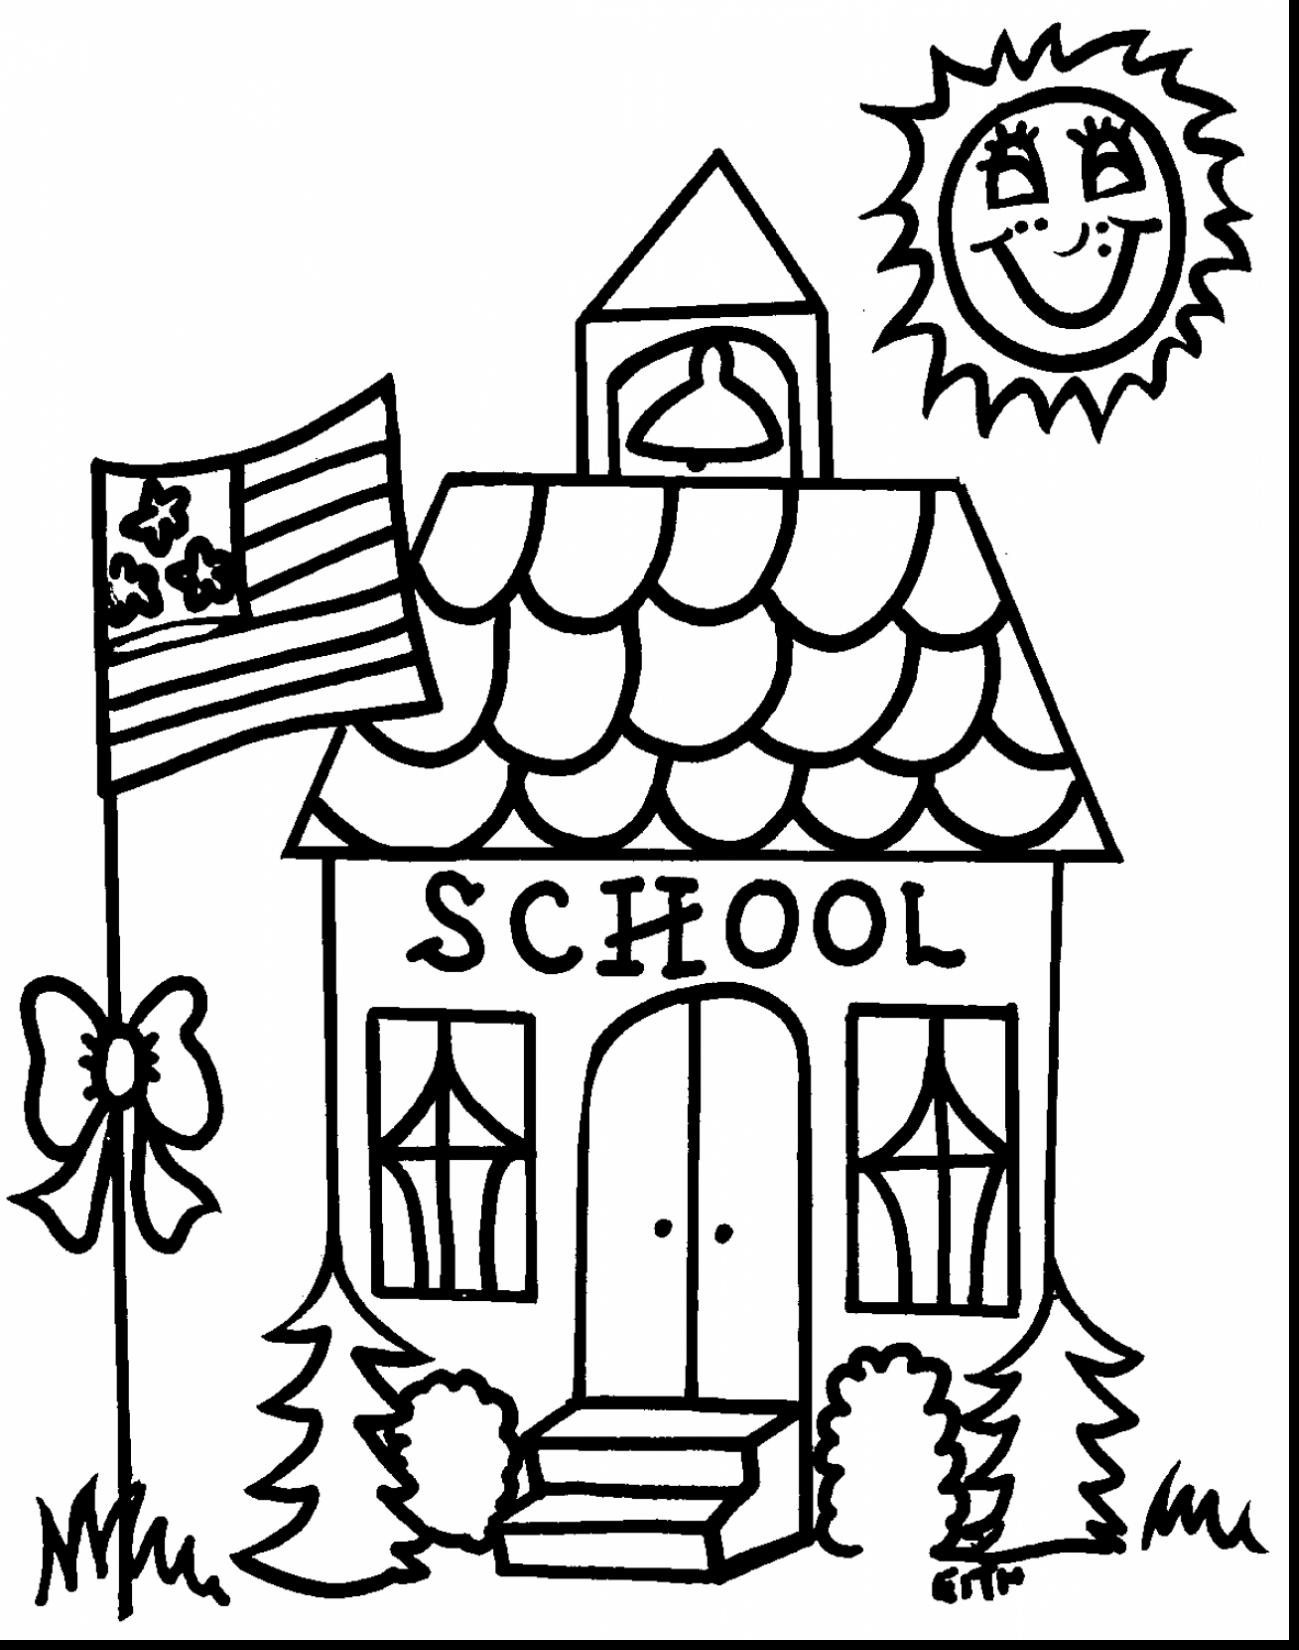 school clipart coloring free printable building clipart cergly school coloring coloring school clipart